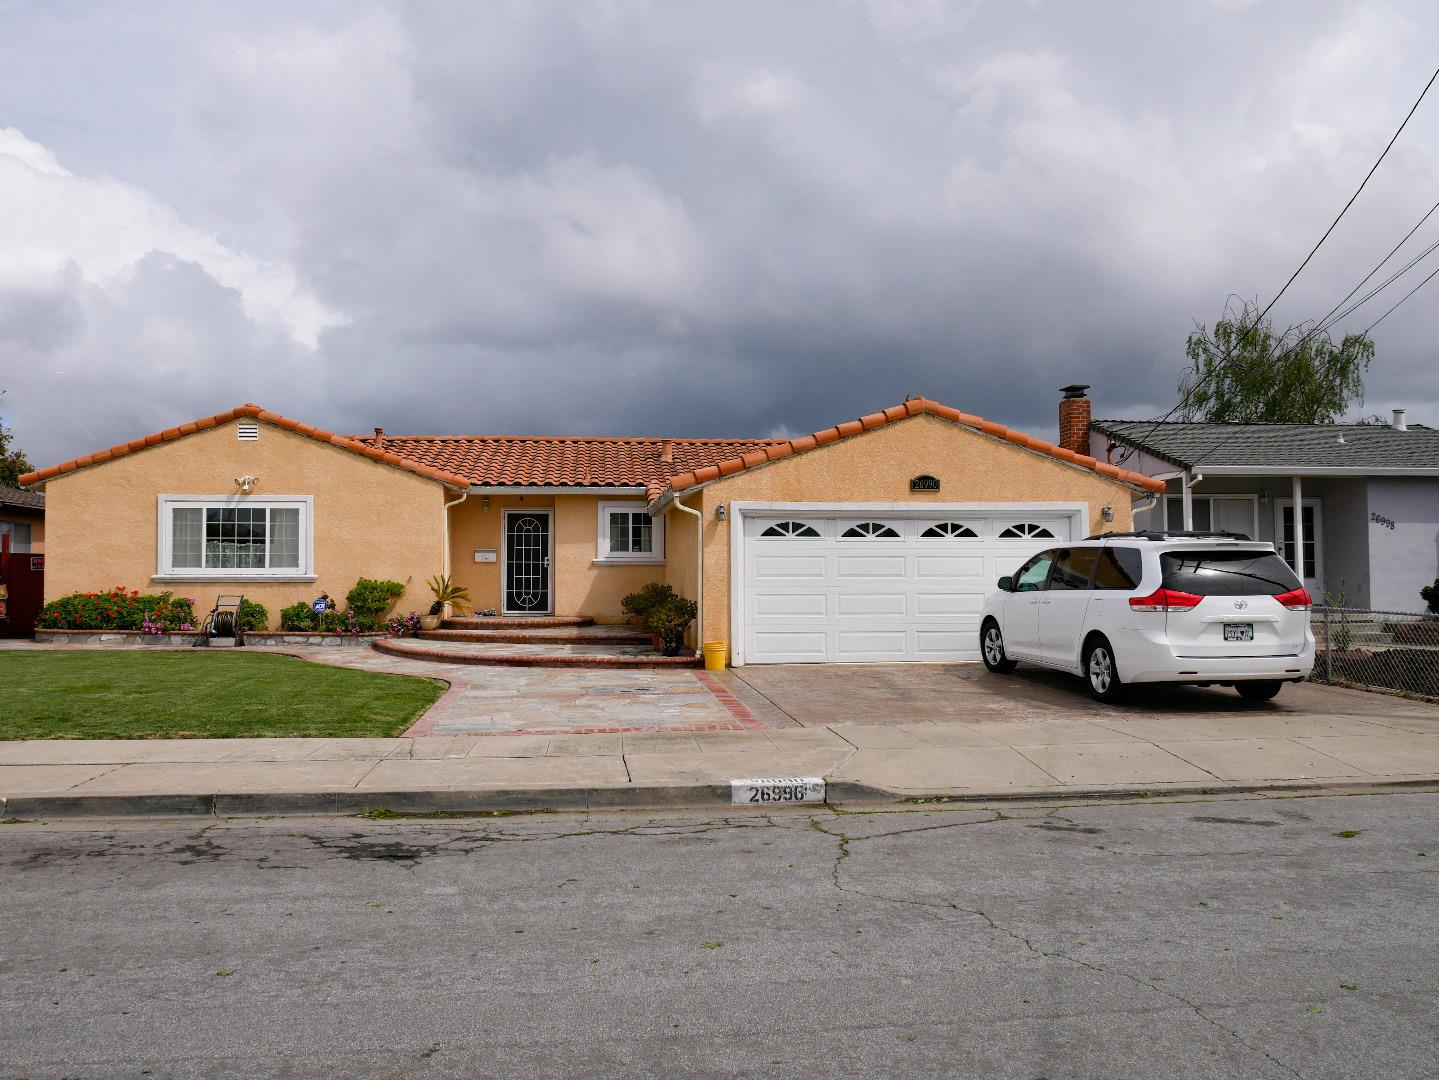 Additional photo for property listing at 26990 Jennings Way  Hayward, California 94544 Estados Unidos